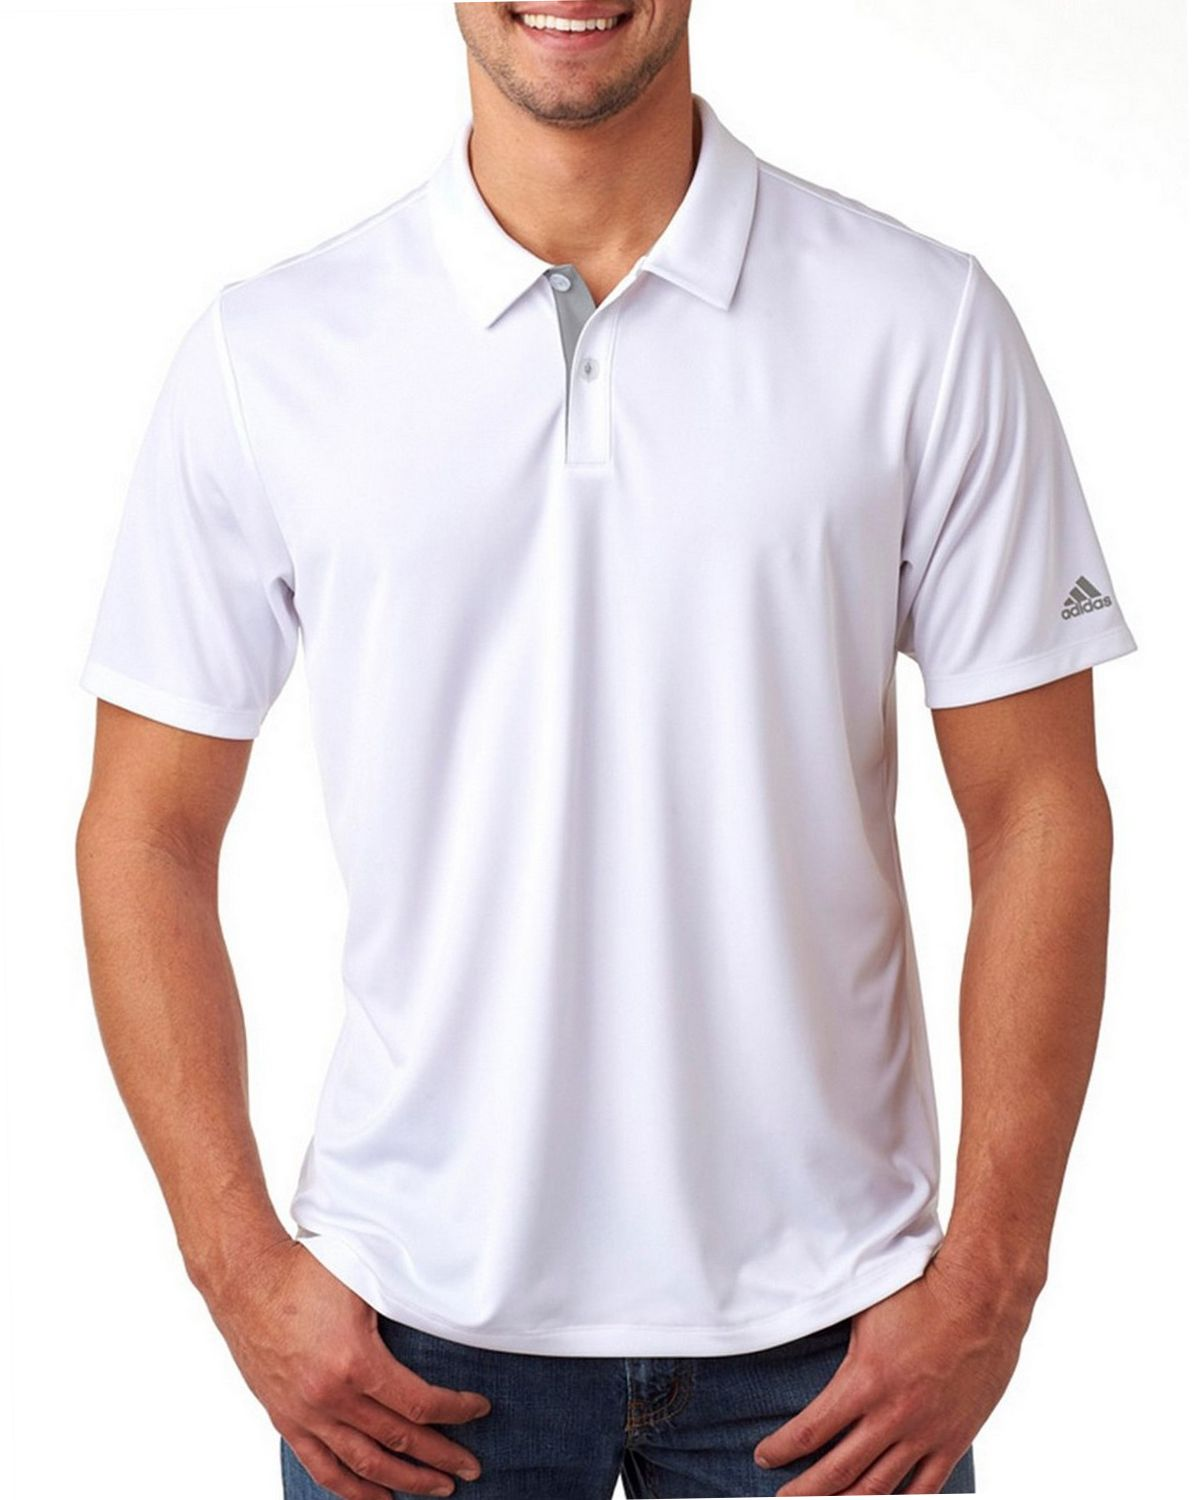 adidas 3 stripes polo